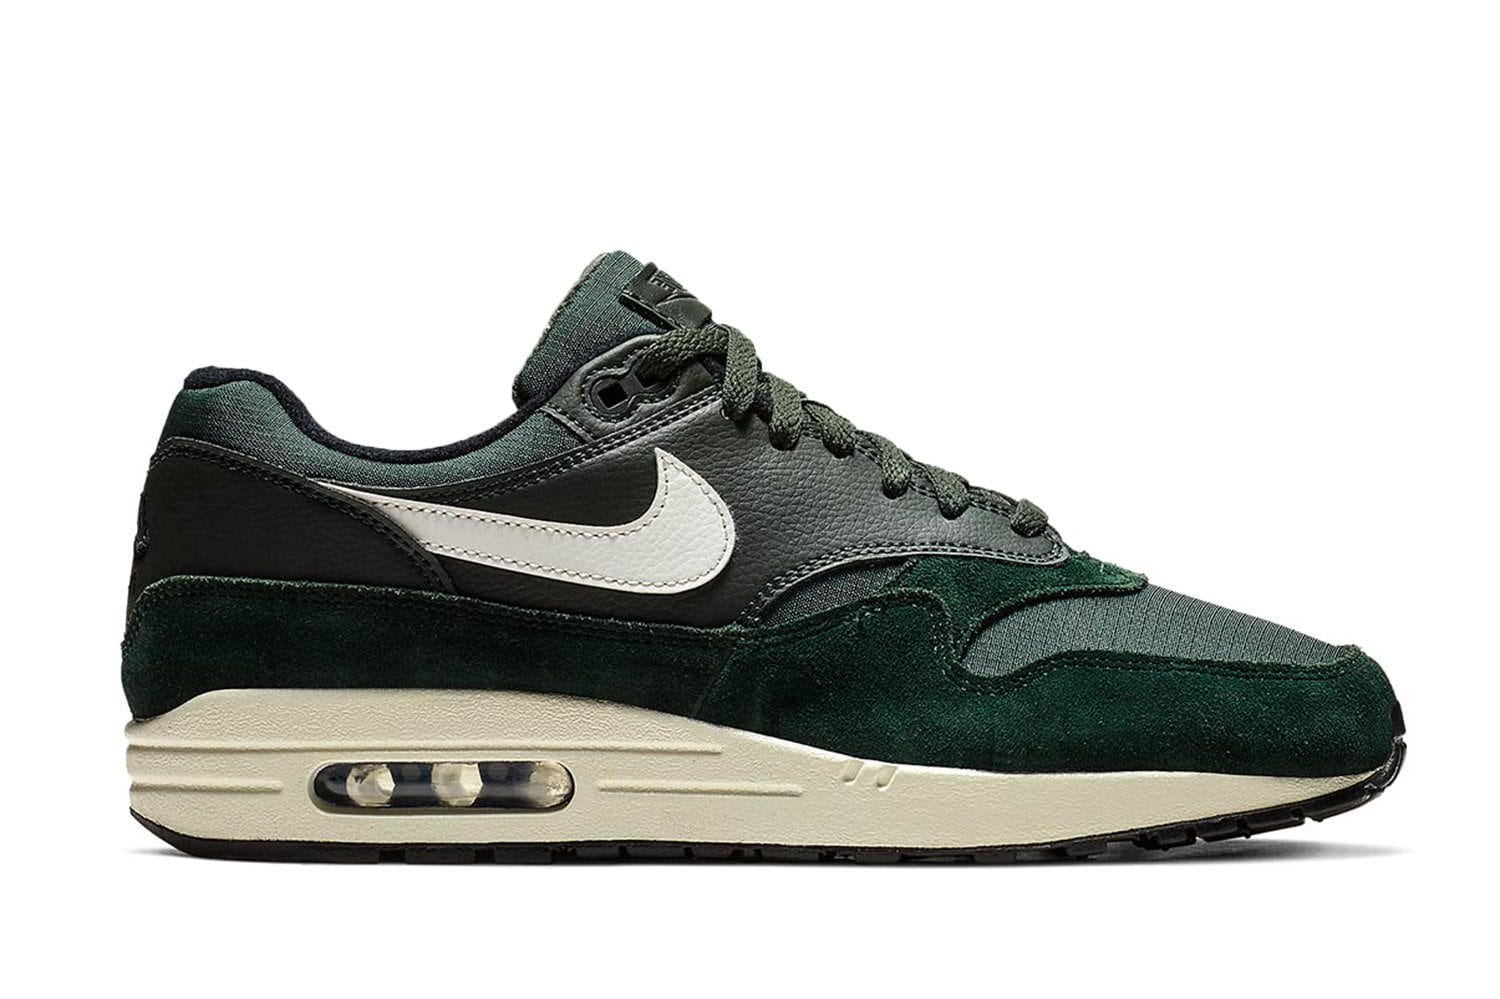 AIR MAX 1 Unclassified NRML GREEN 8.5